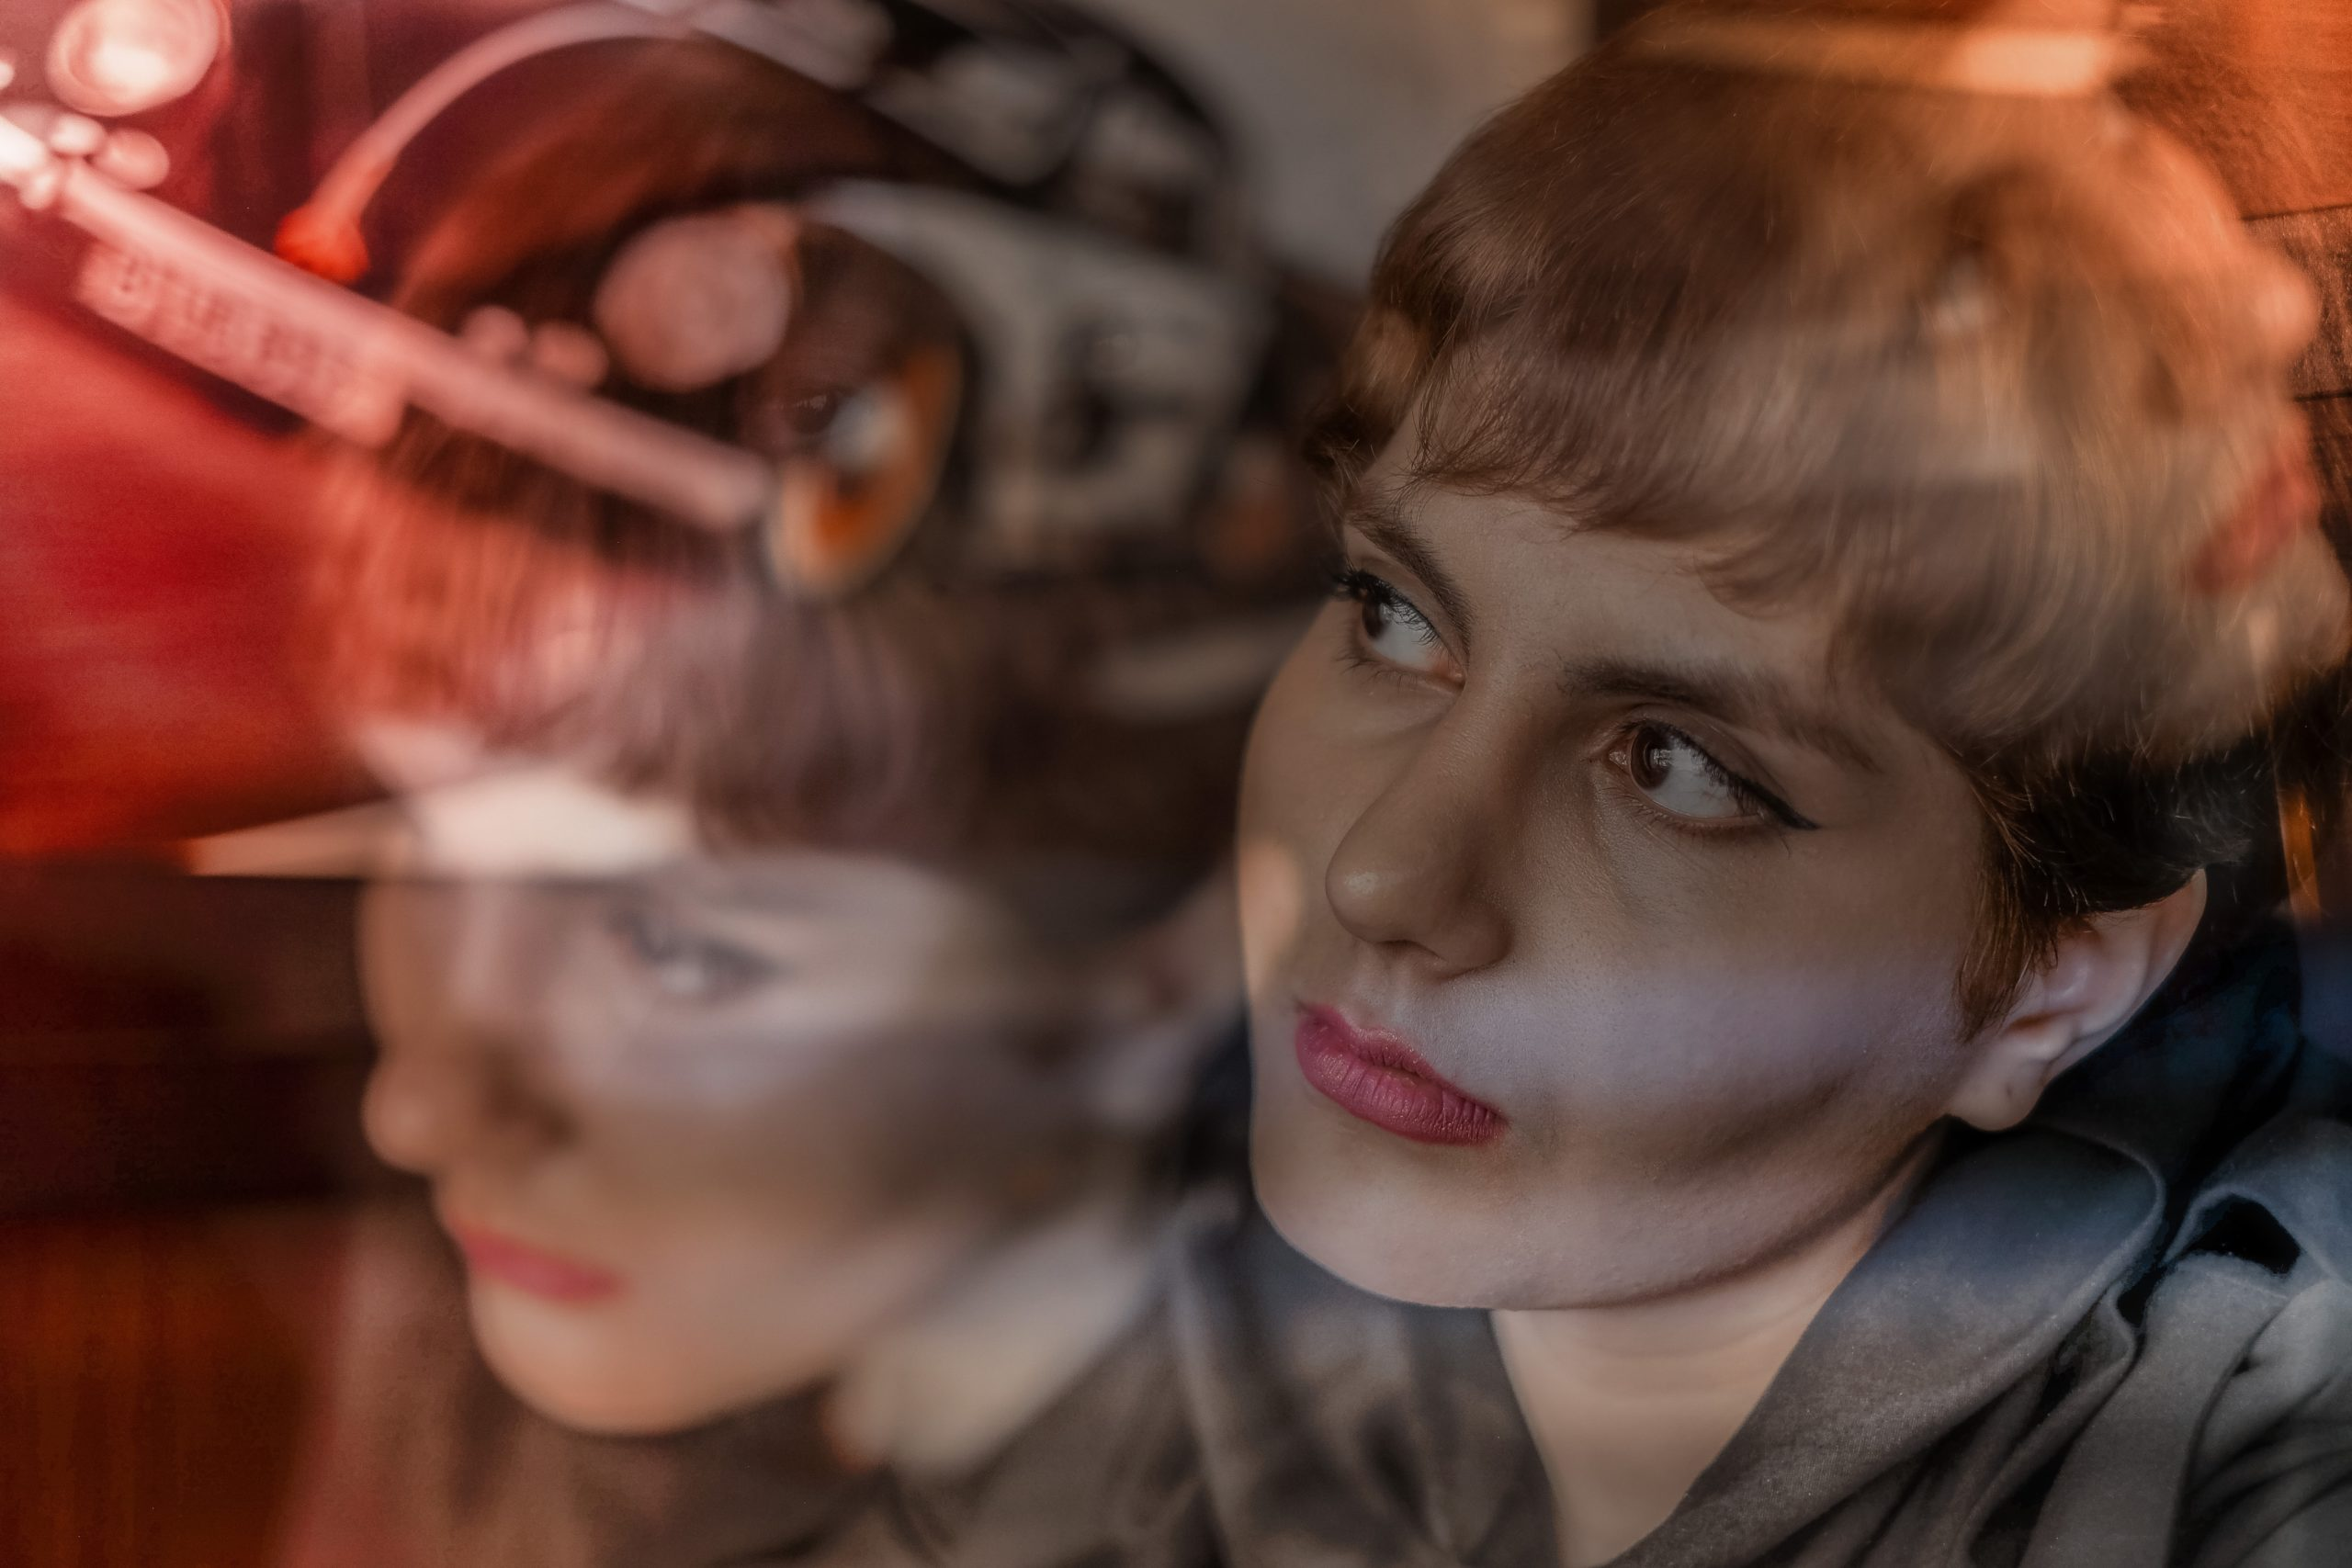 A photo taken with multiple exposures so that a woman's face appears in several different positions and expressions, overlapping one another, with additional colors and light sources mixed in. She is light skinned with very short hair, a grey blouse, and pink lipstick.